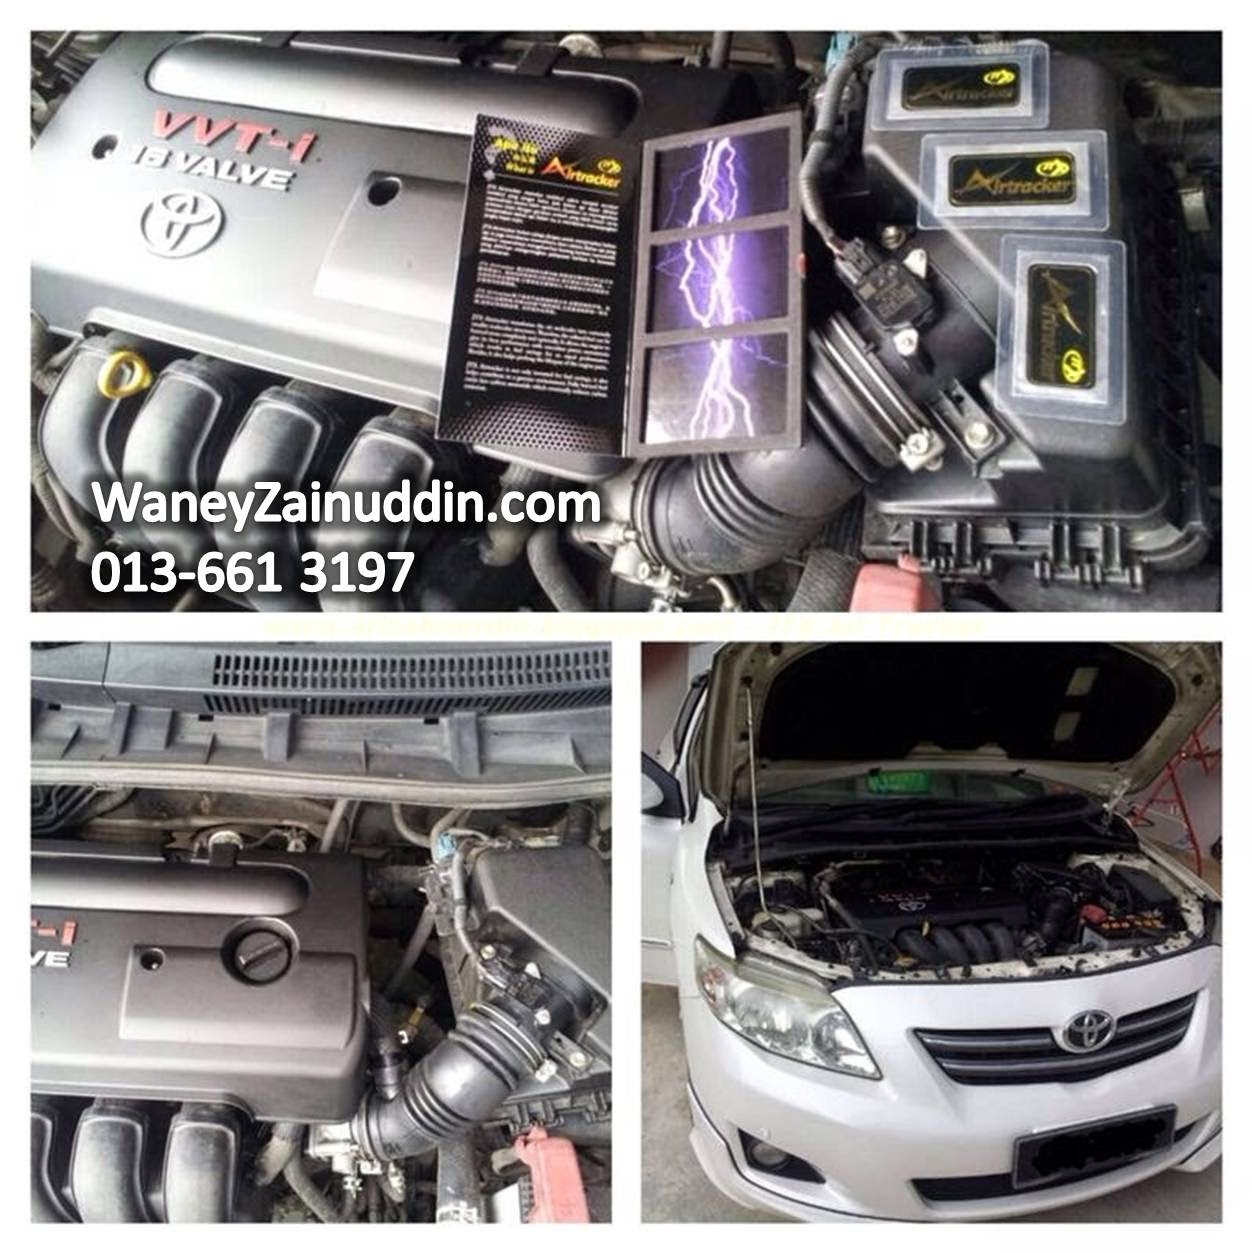 Installation JTX Air Tracker pada Toyota Altis 1.8cc.